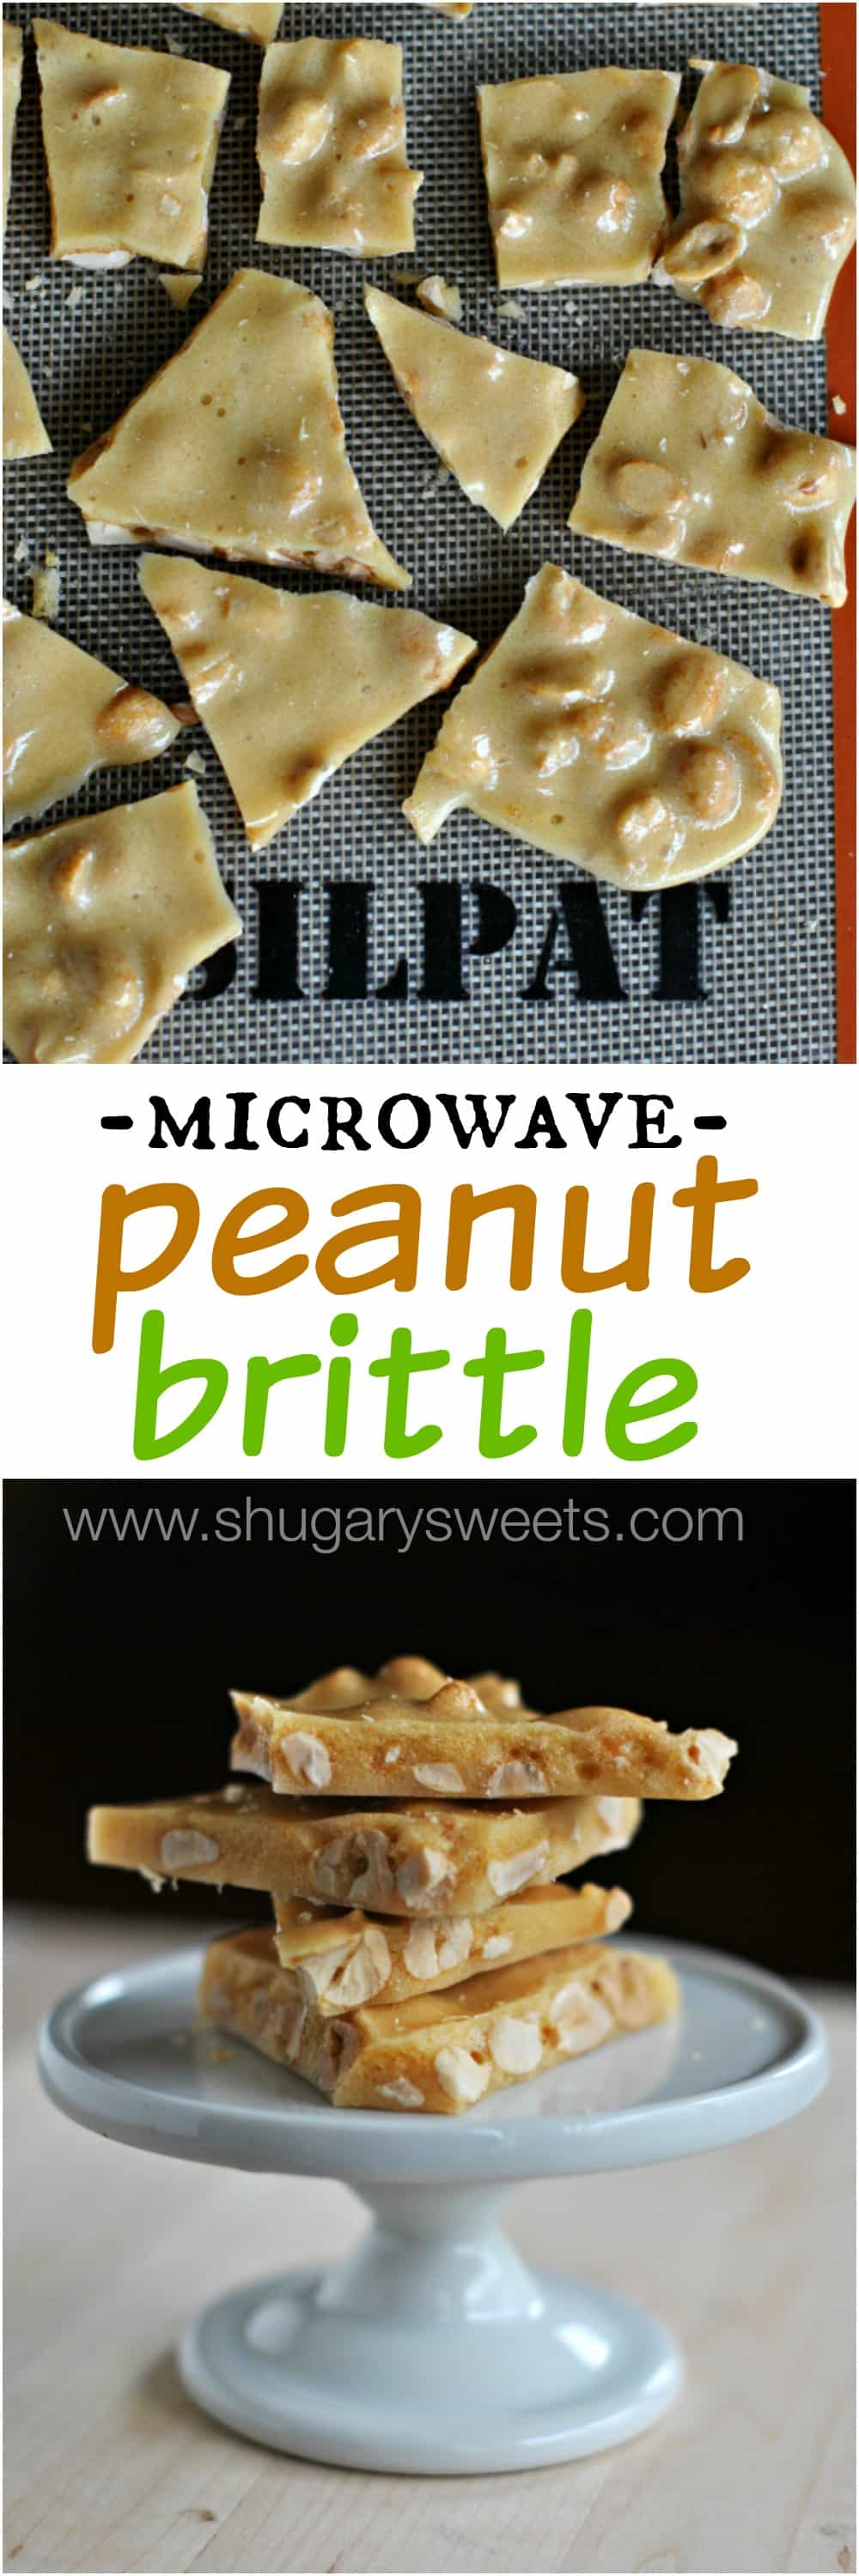 Shugary Sweets: Microwave Peanut Brittle